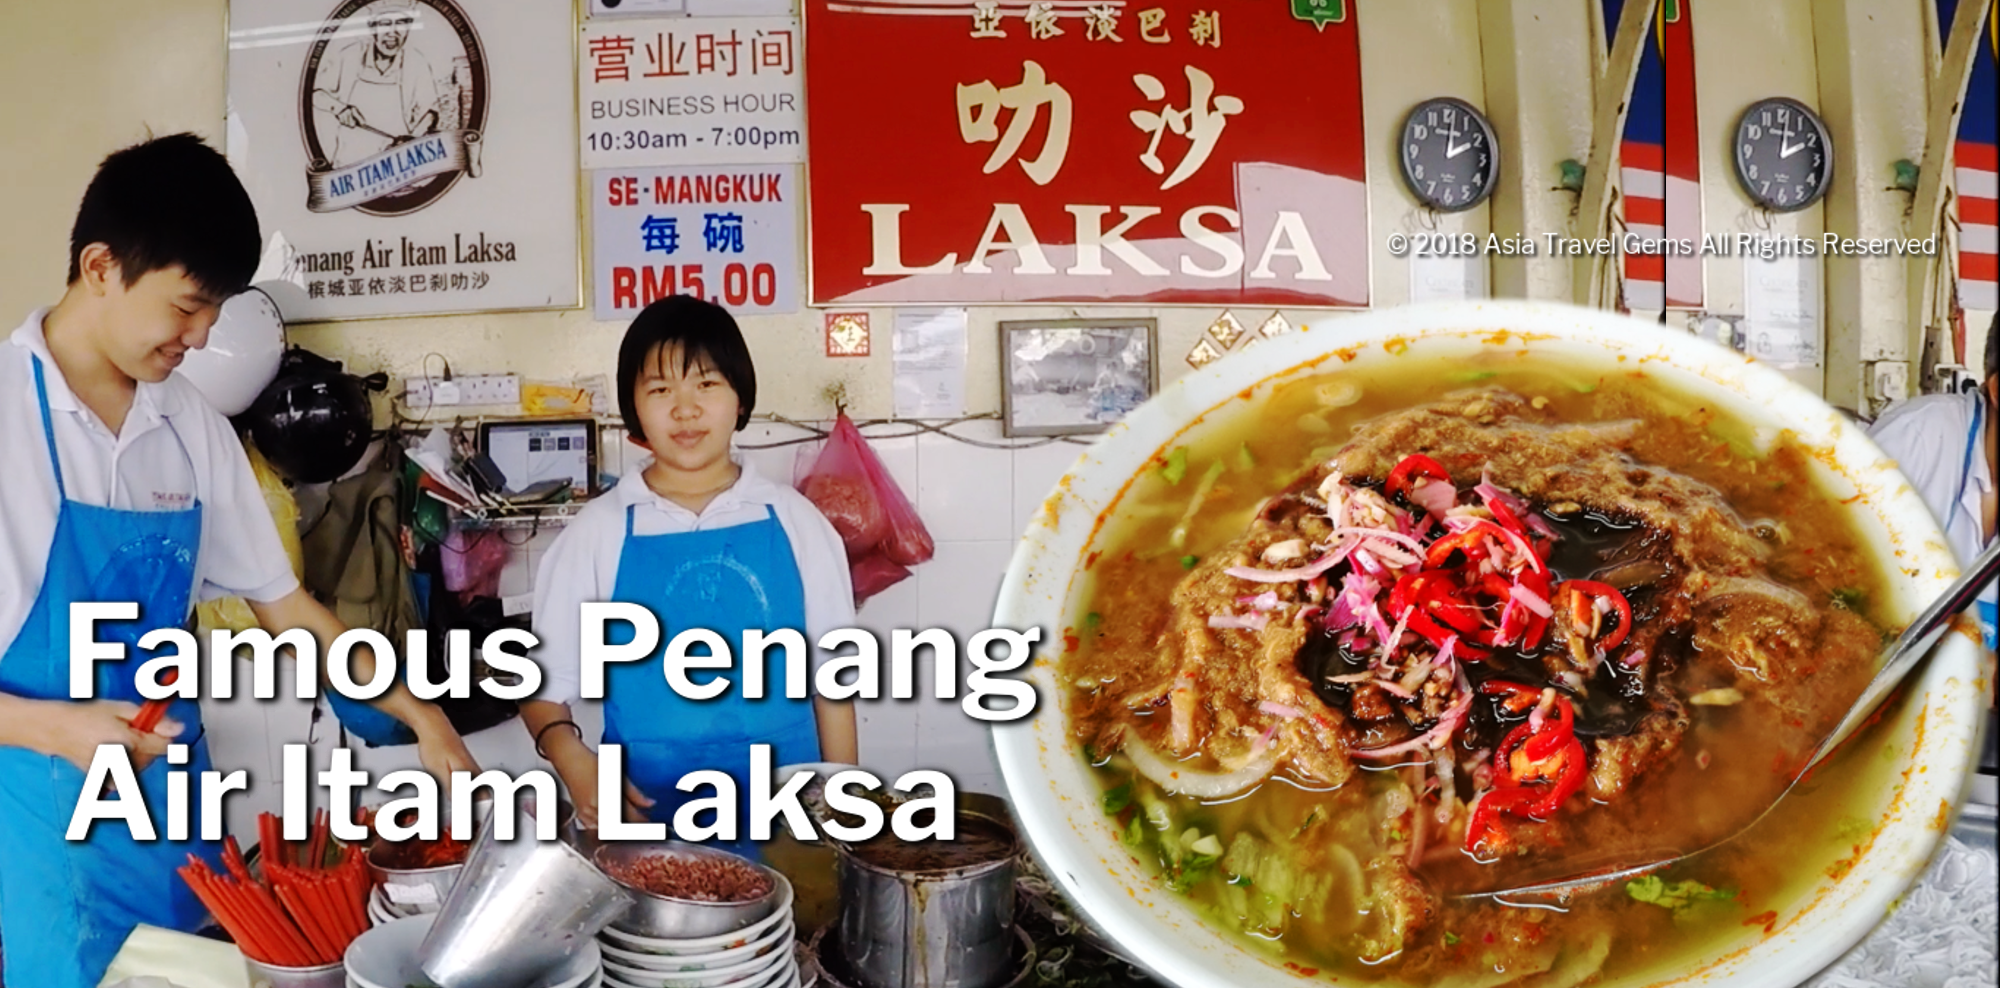 Penang Food - Assam Laksa at Air Itam